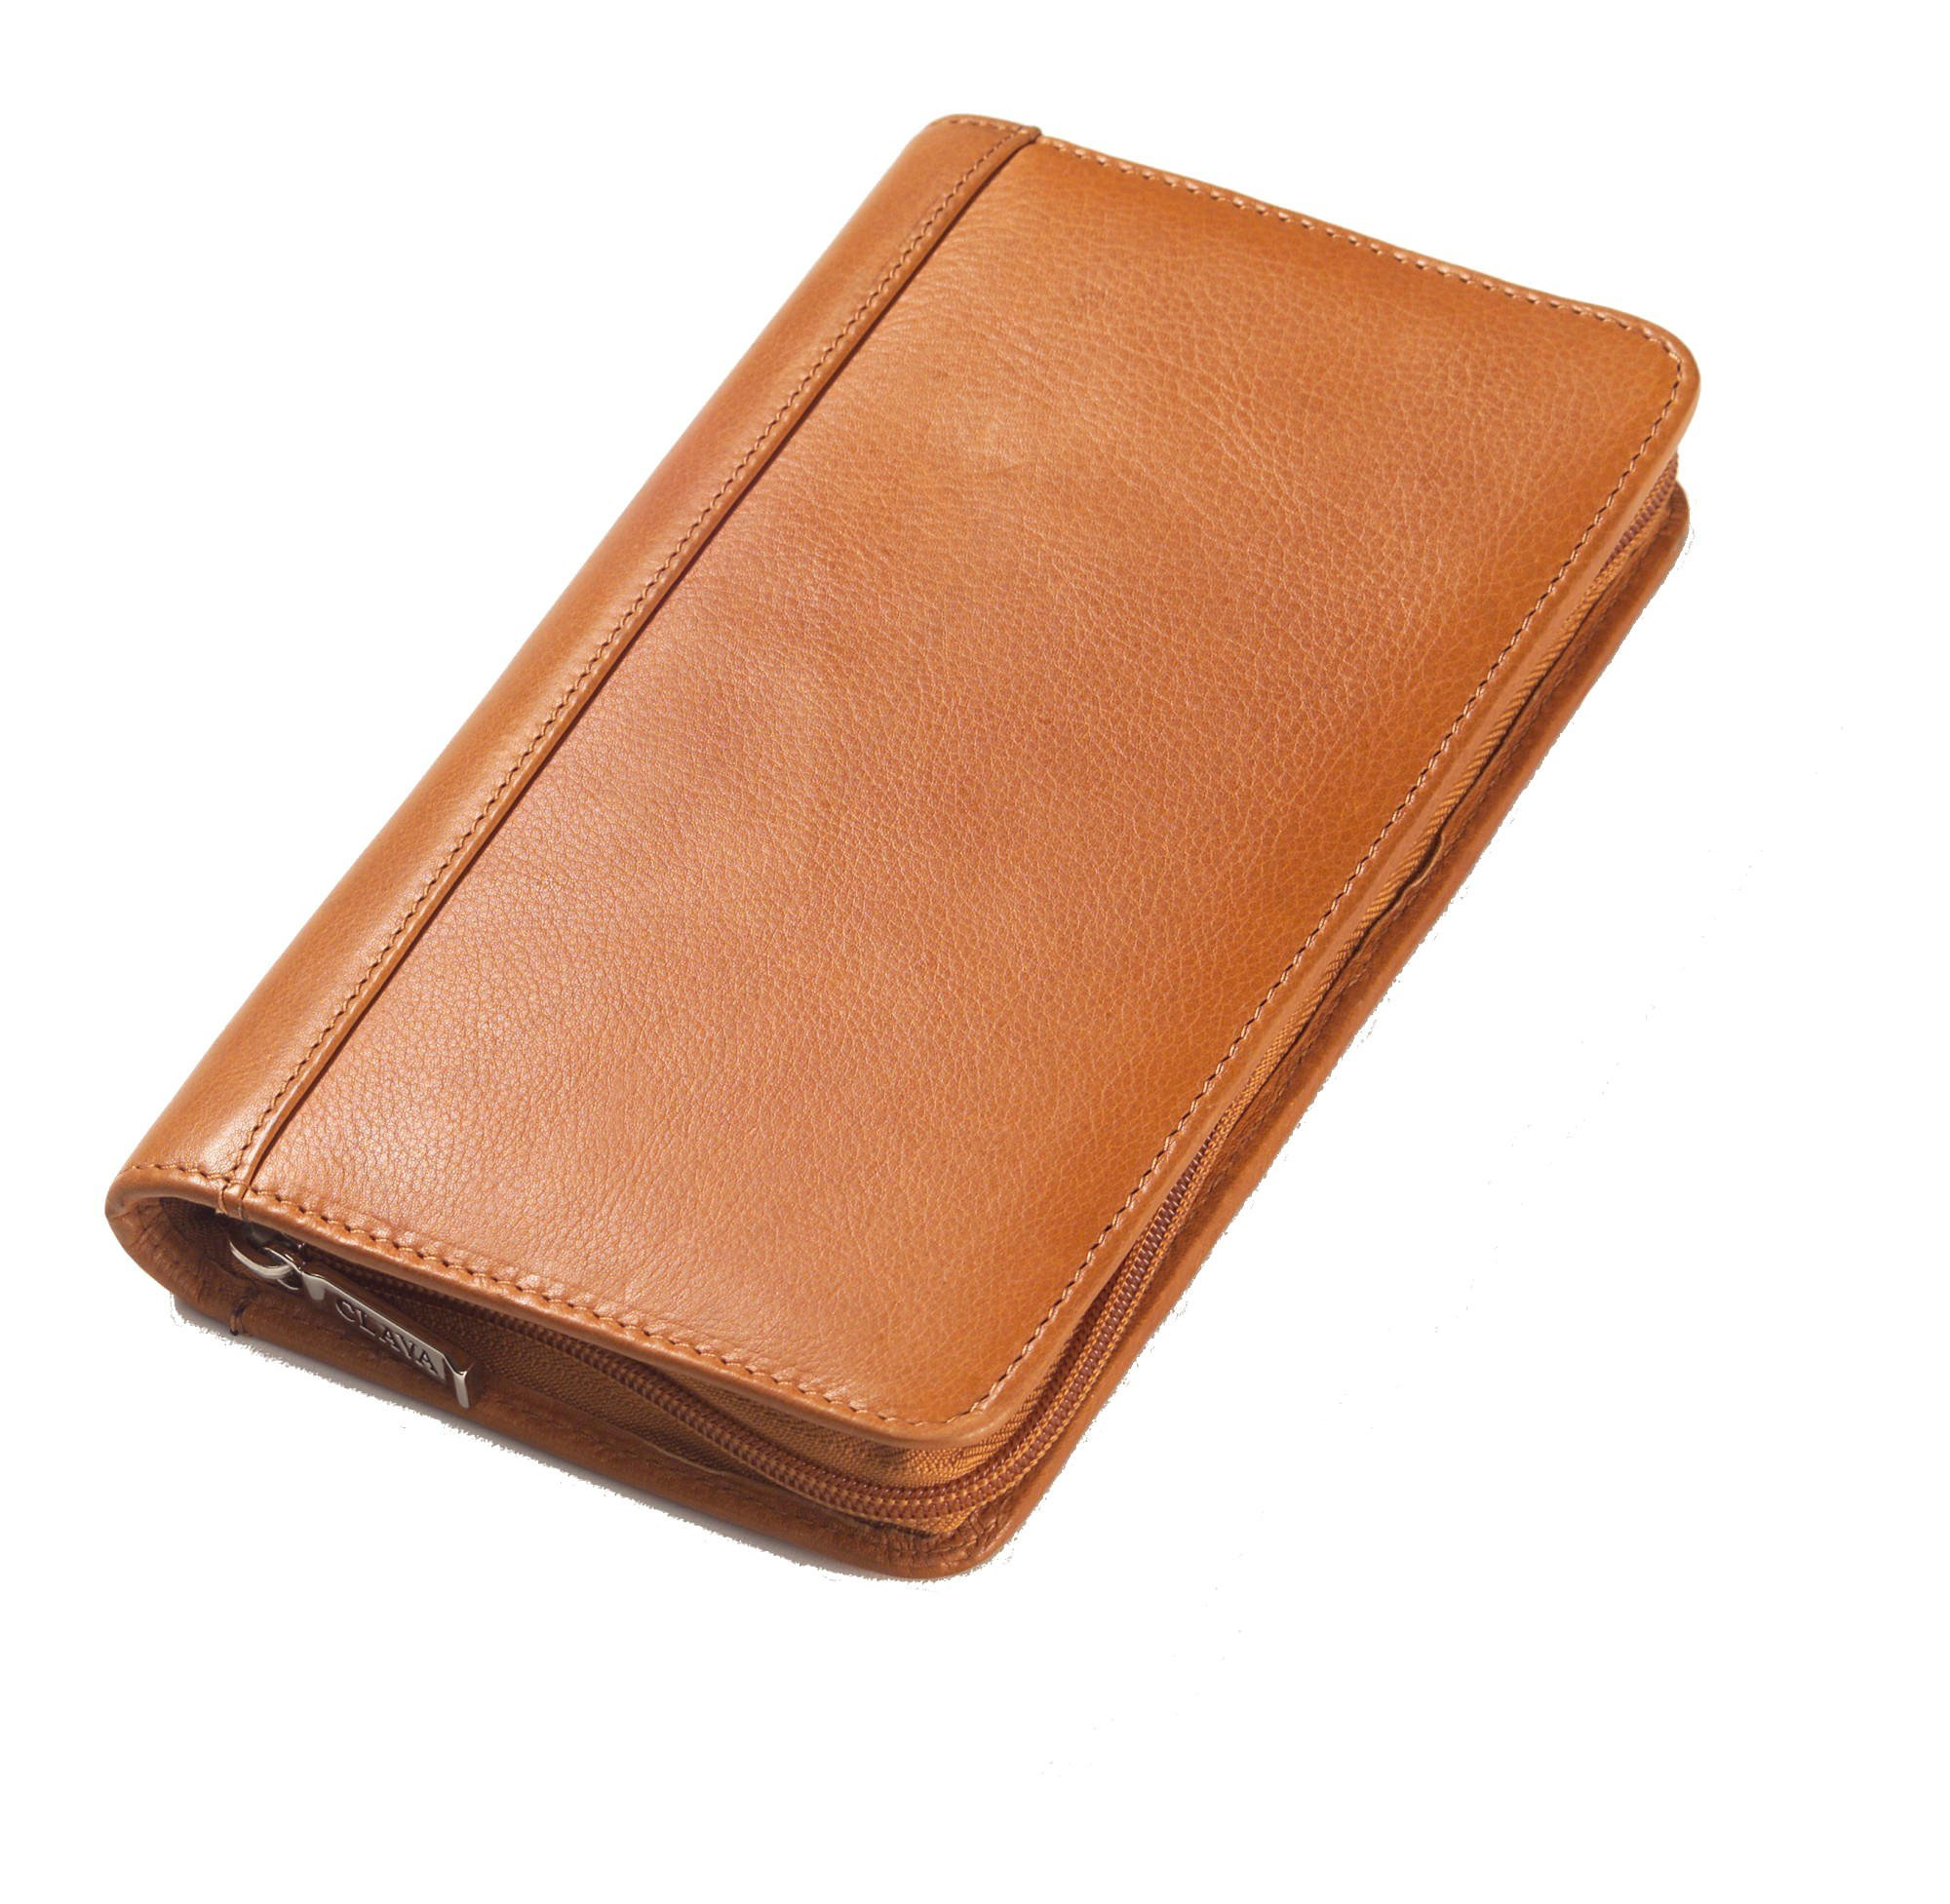 Glazed Leather Passport Travel Wallet Color: Tuscan Tan by Clava Leather